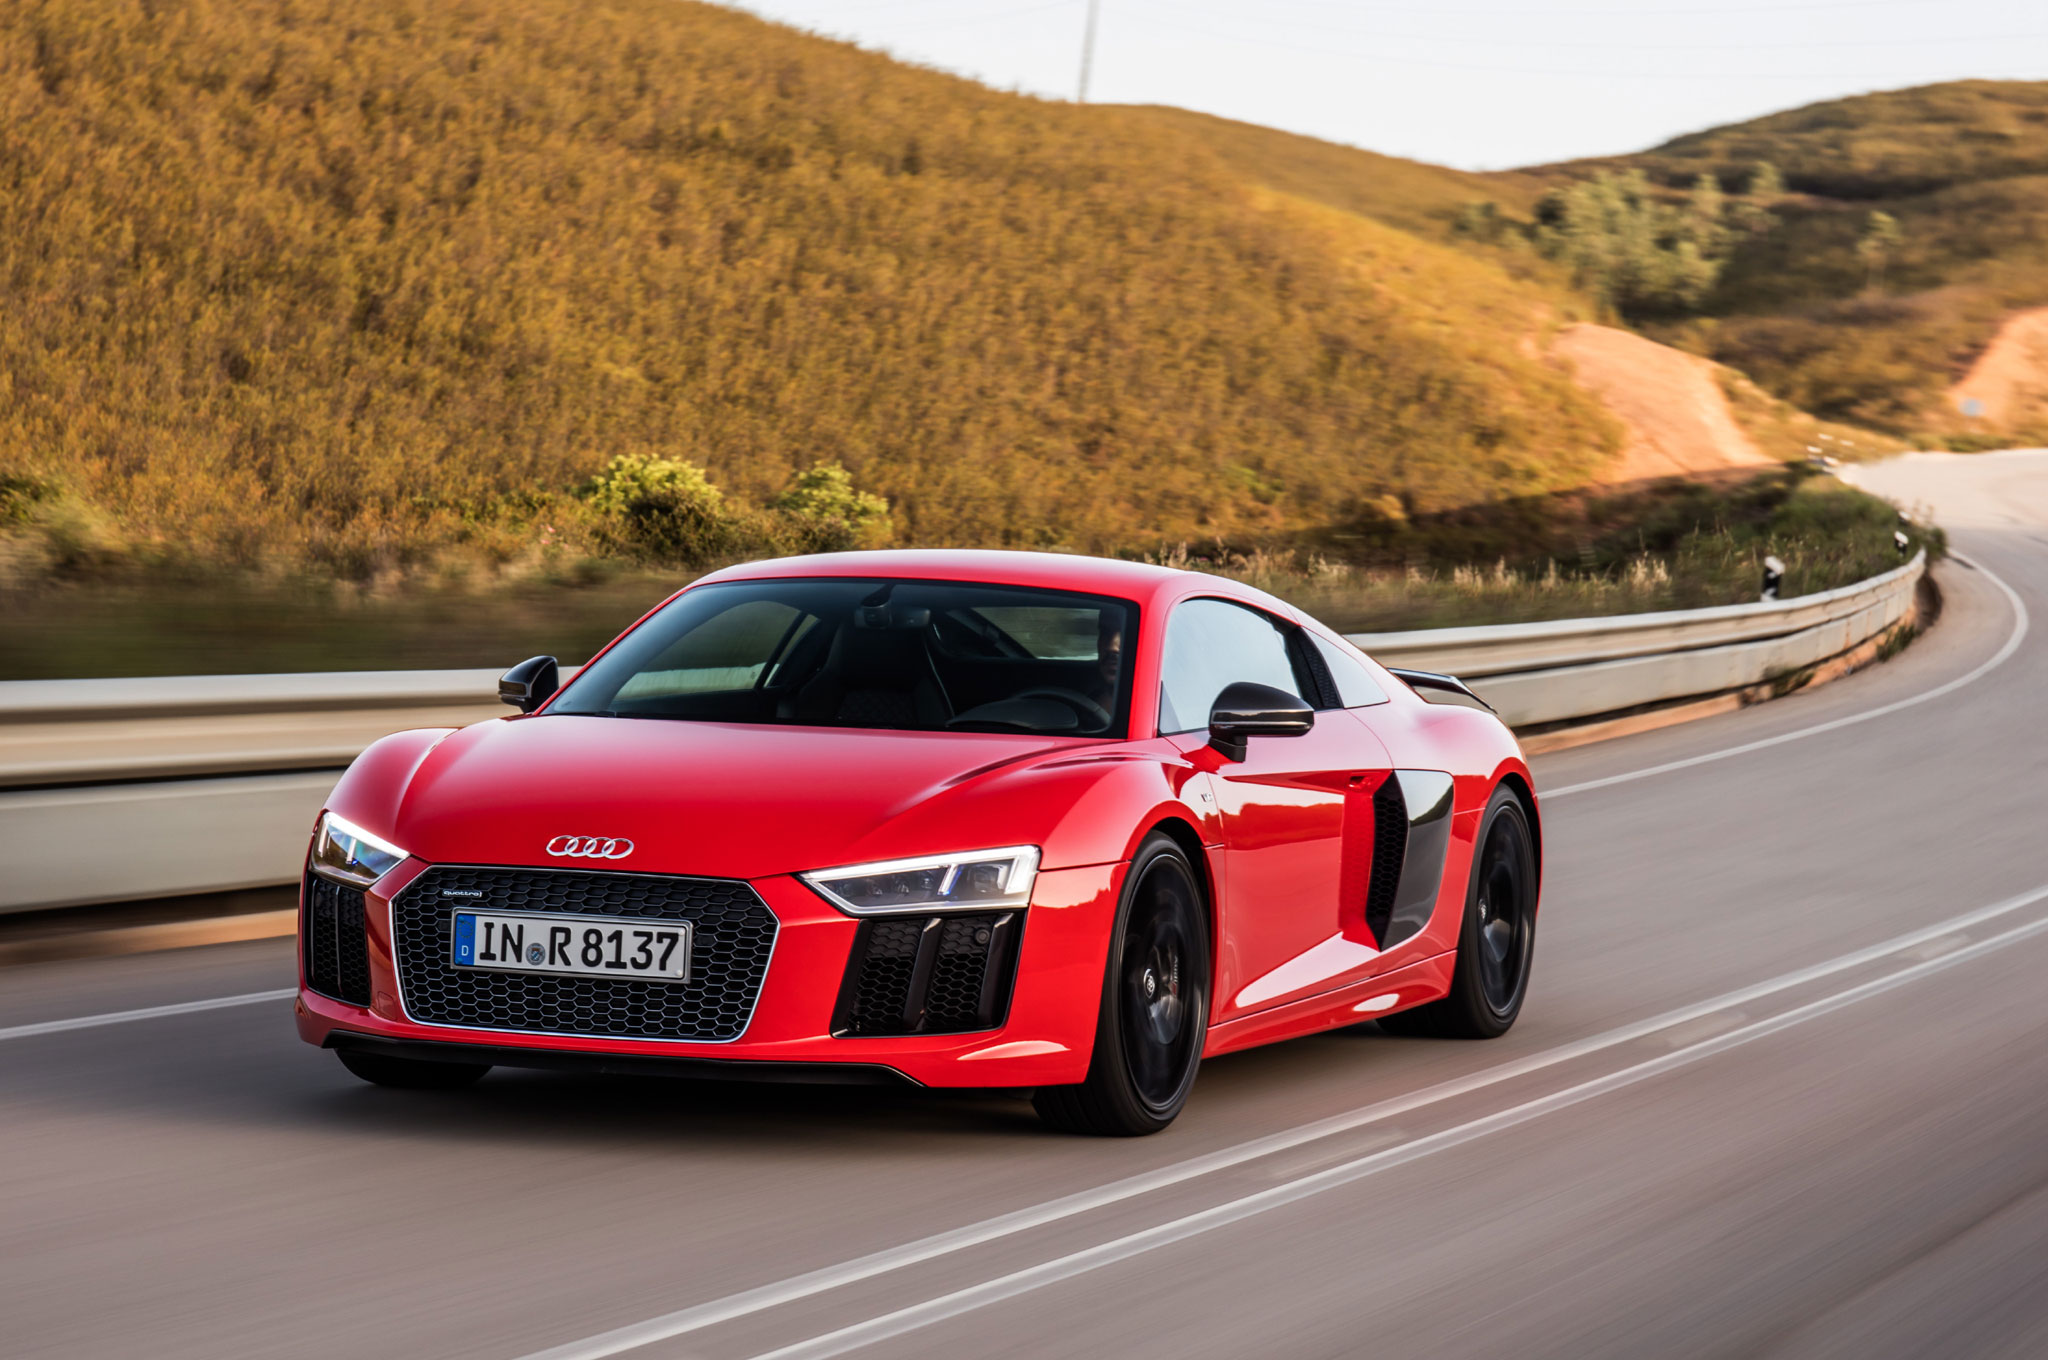 2017 audi r8 v10 spyder one week review automobile magazine. Black Bedroom Furniture Sets. Home Design Ideas